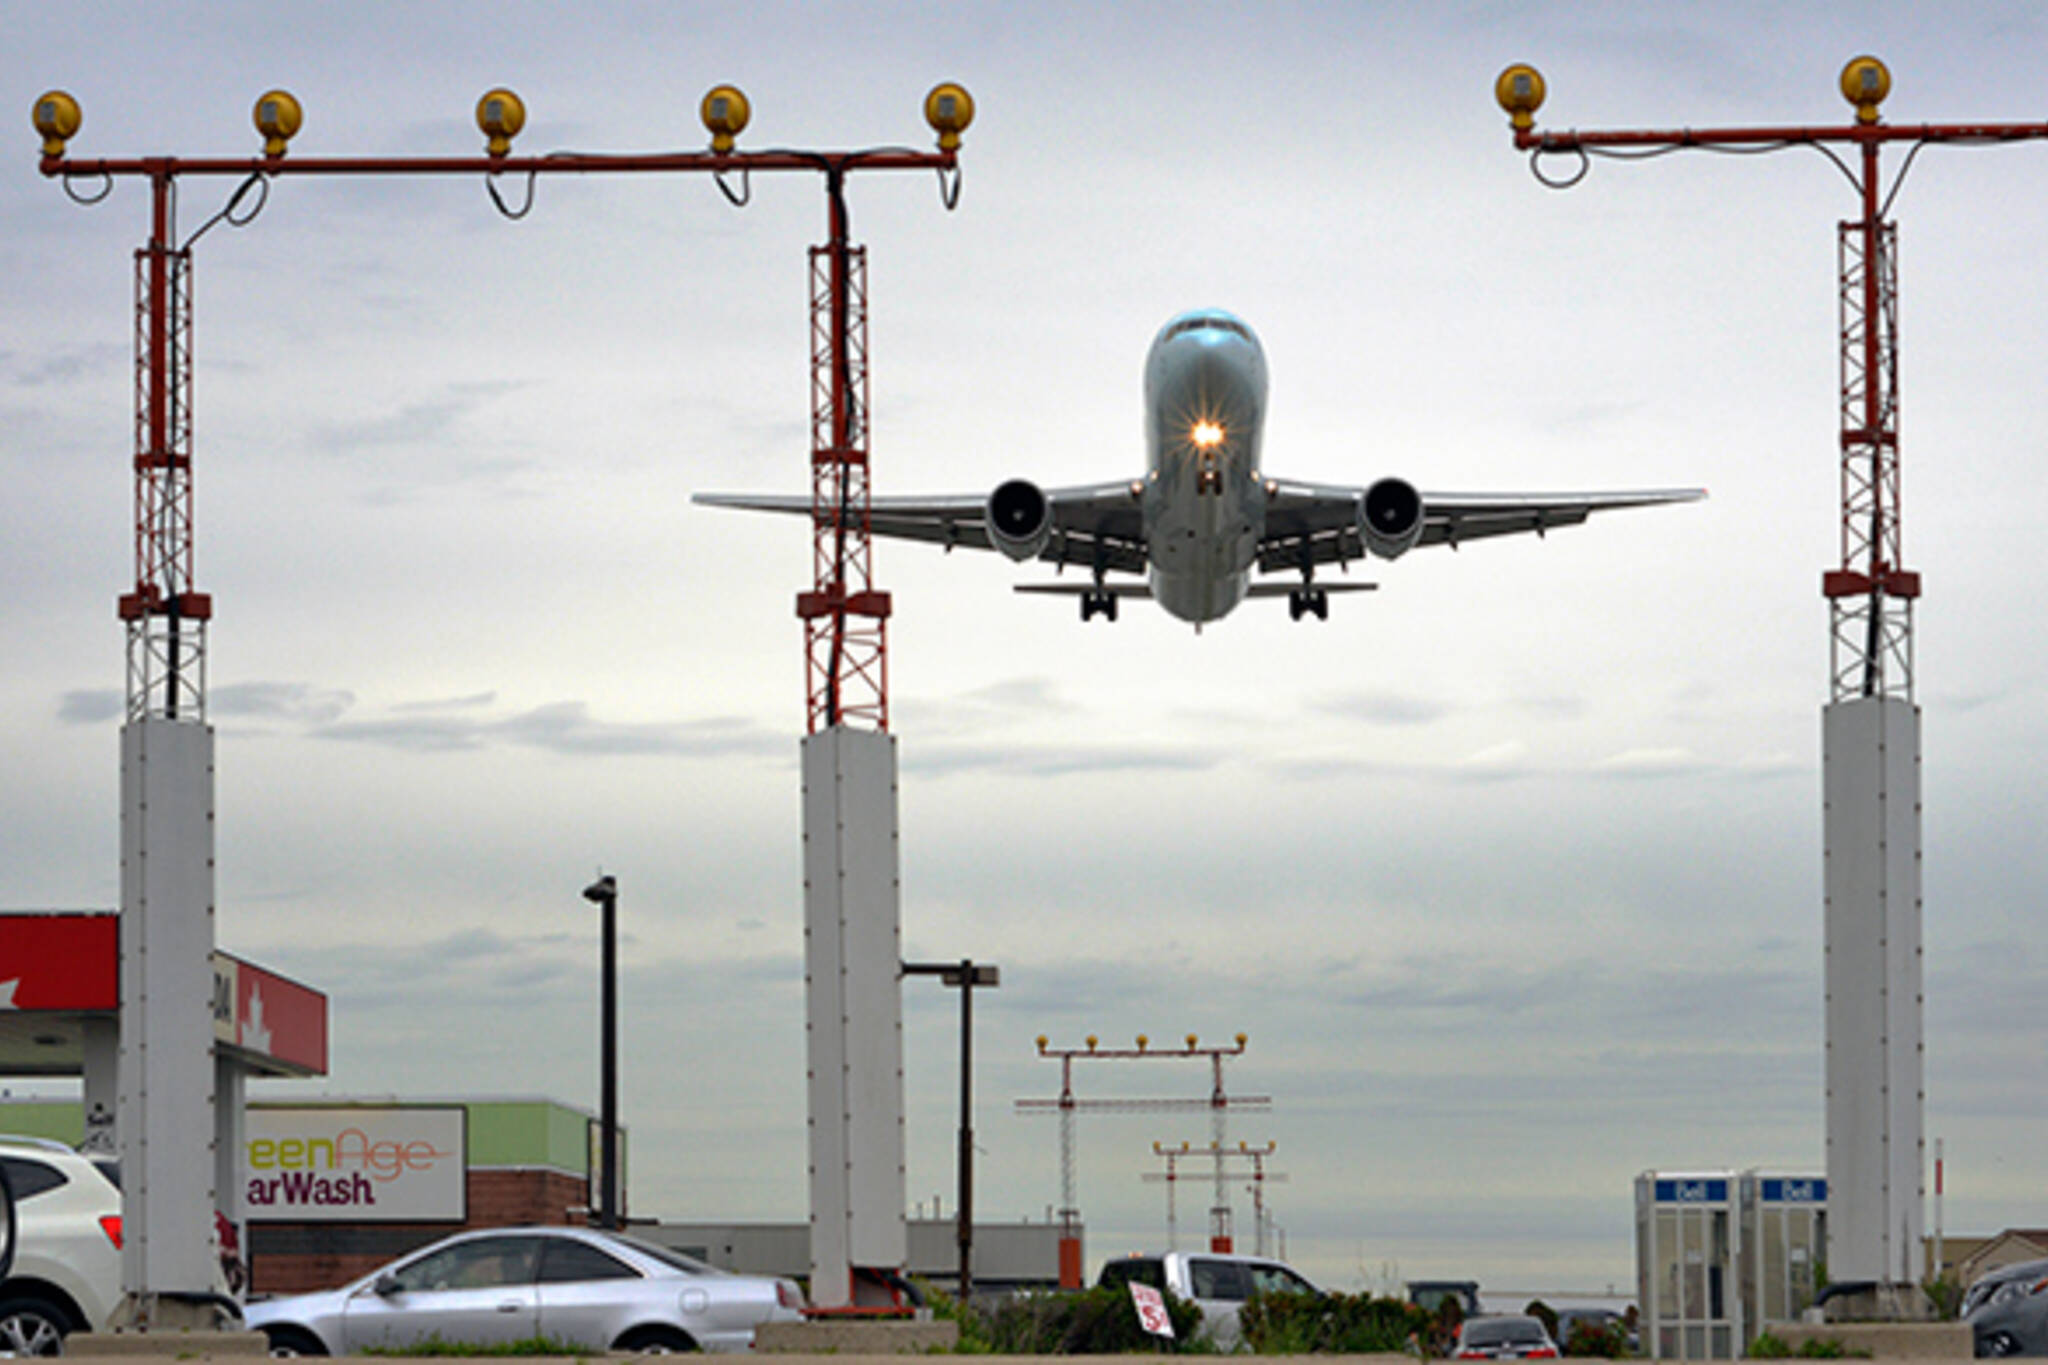 The essential guide to plane spotting in Toronto